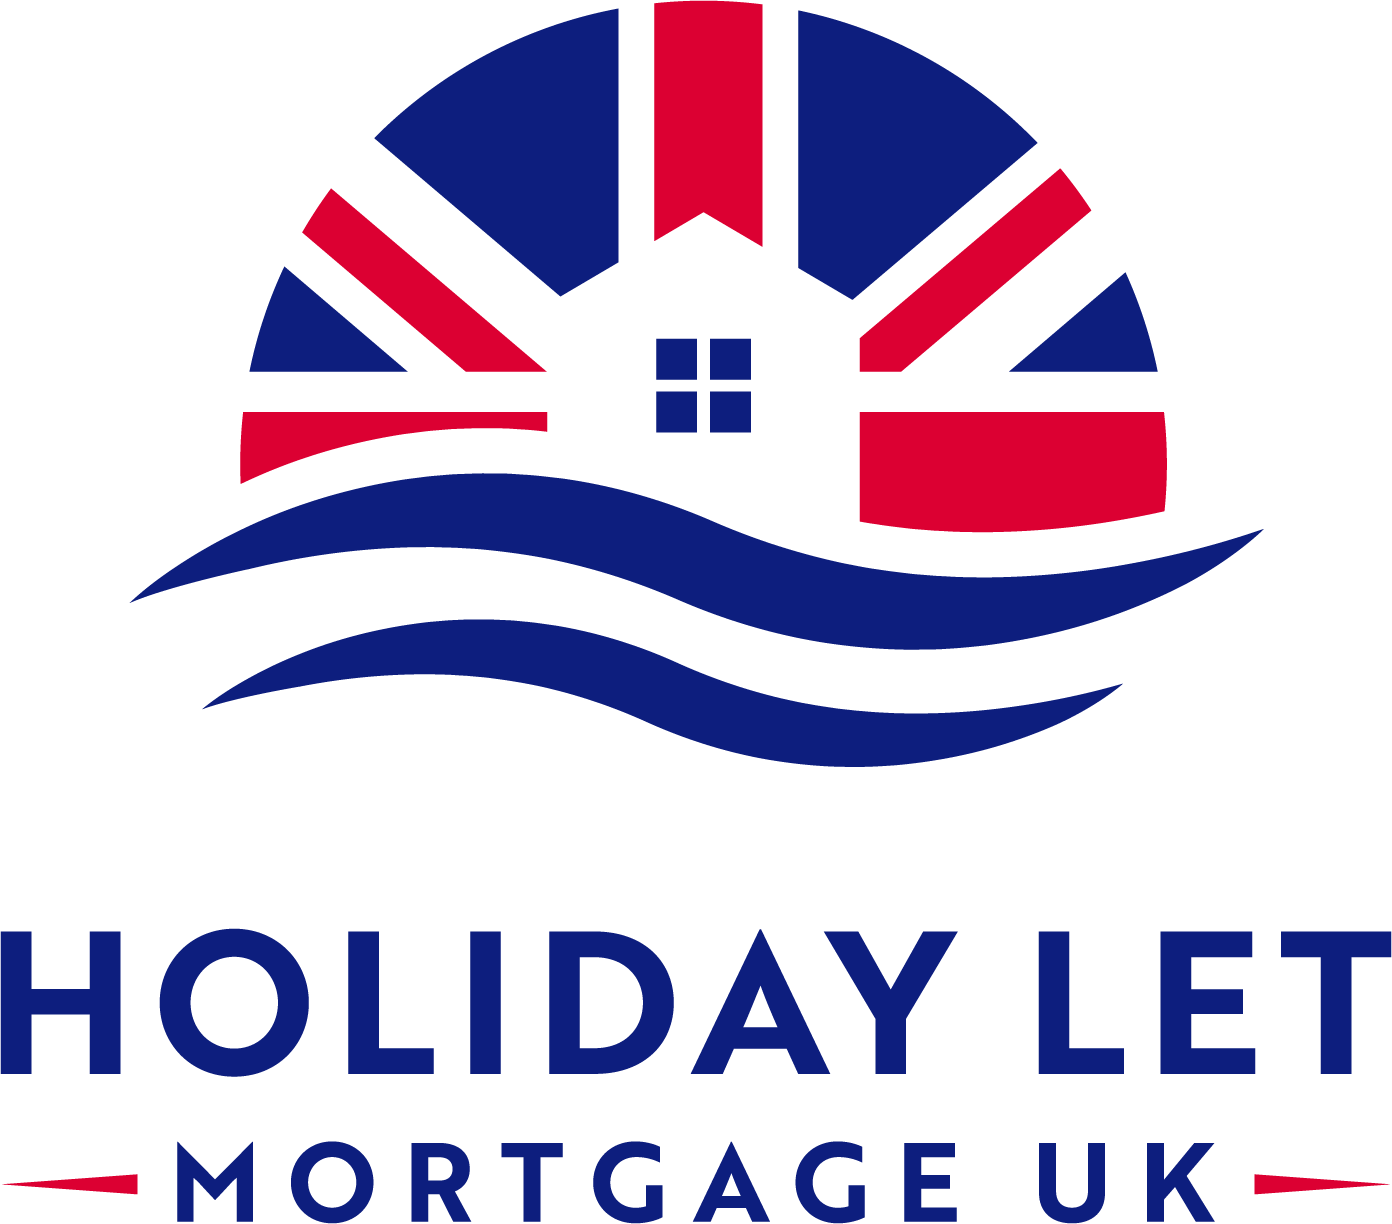 Holiday Let Mortgage UK